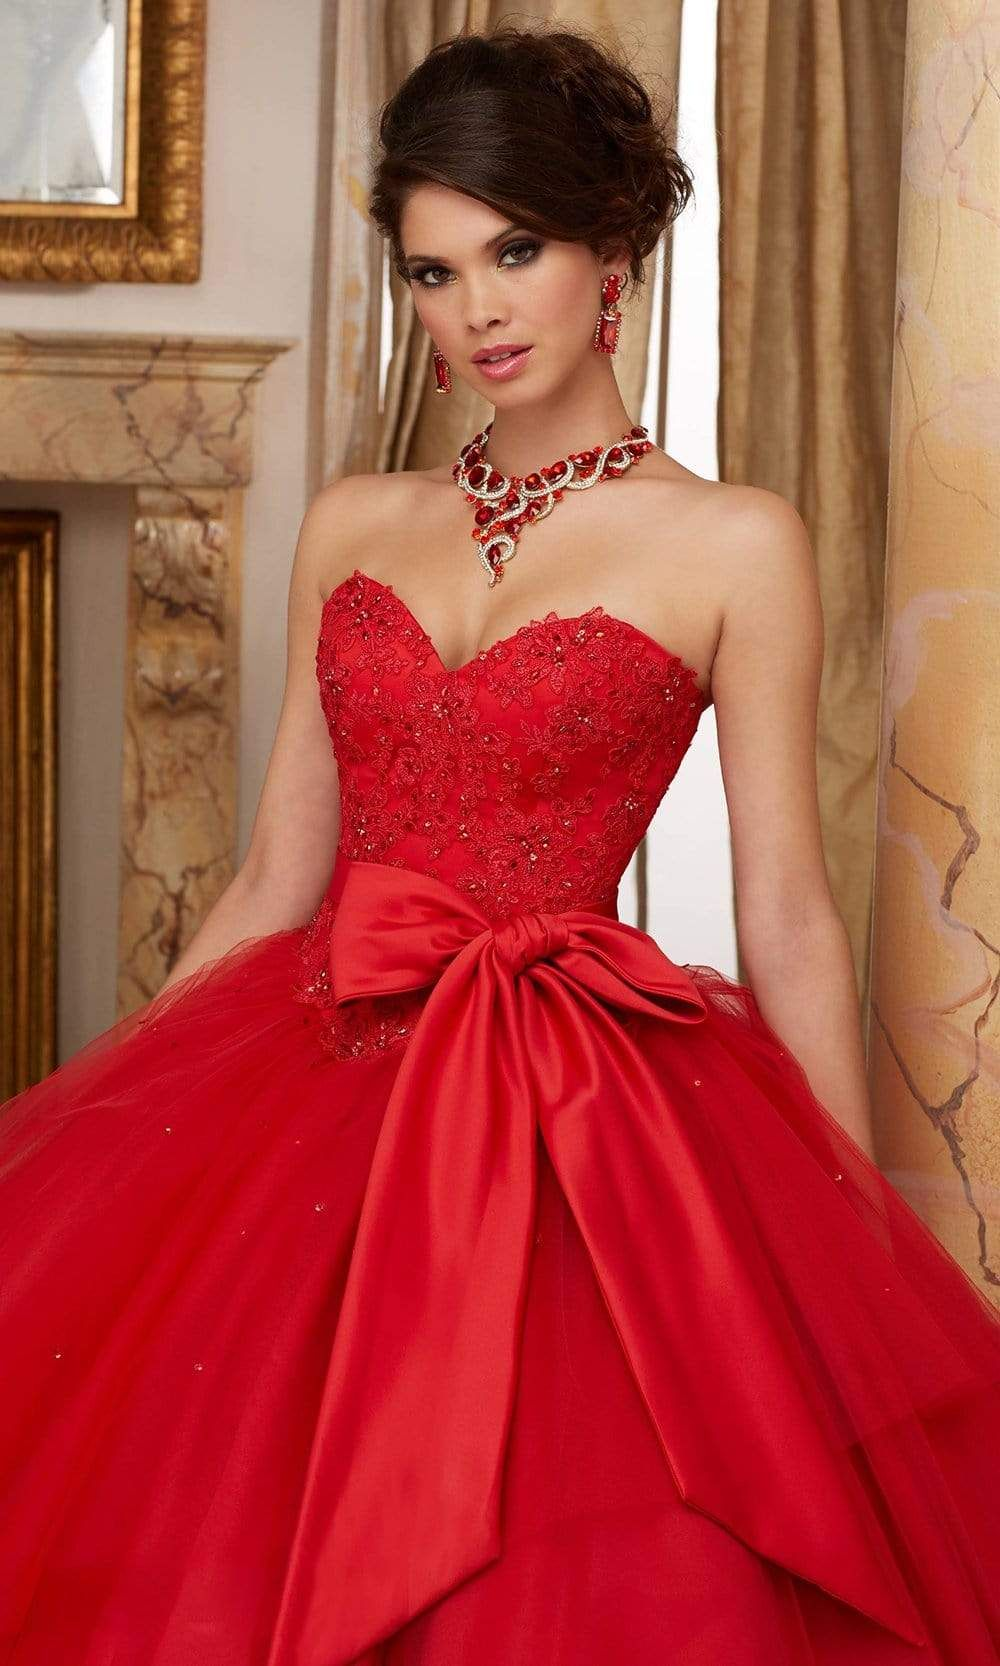 Vizcaya By Mori Lee 60003 Strapless Bow Accented Tulle Ballgown Pretty Quinceanera Dresses Mori Lee Quinceanera Dresses Quince Dresses [ 1666 x 1000 Pixel ]